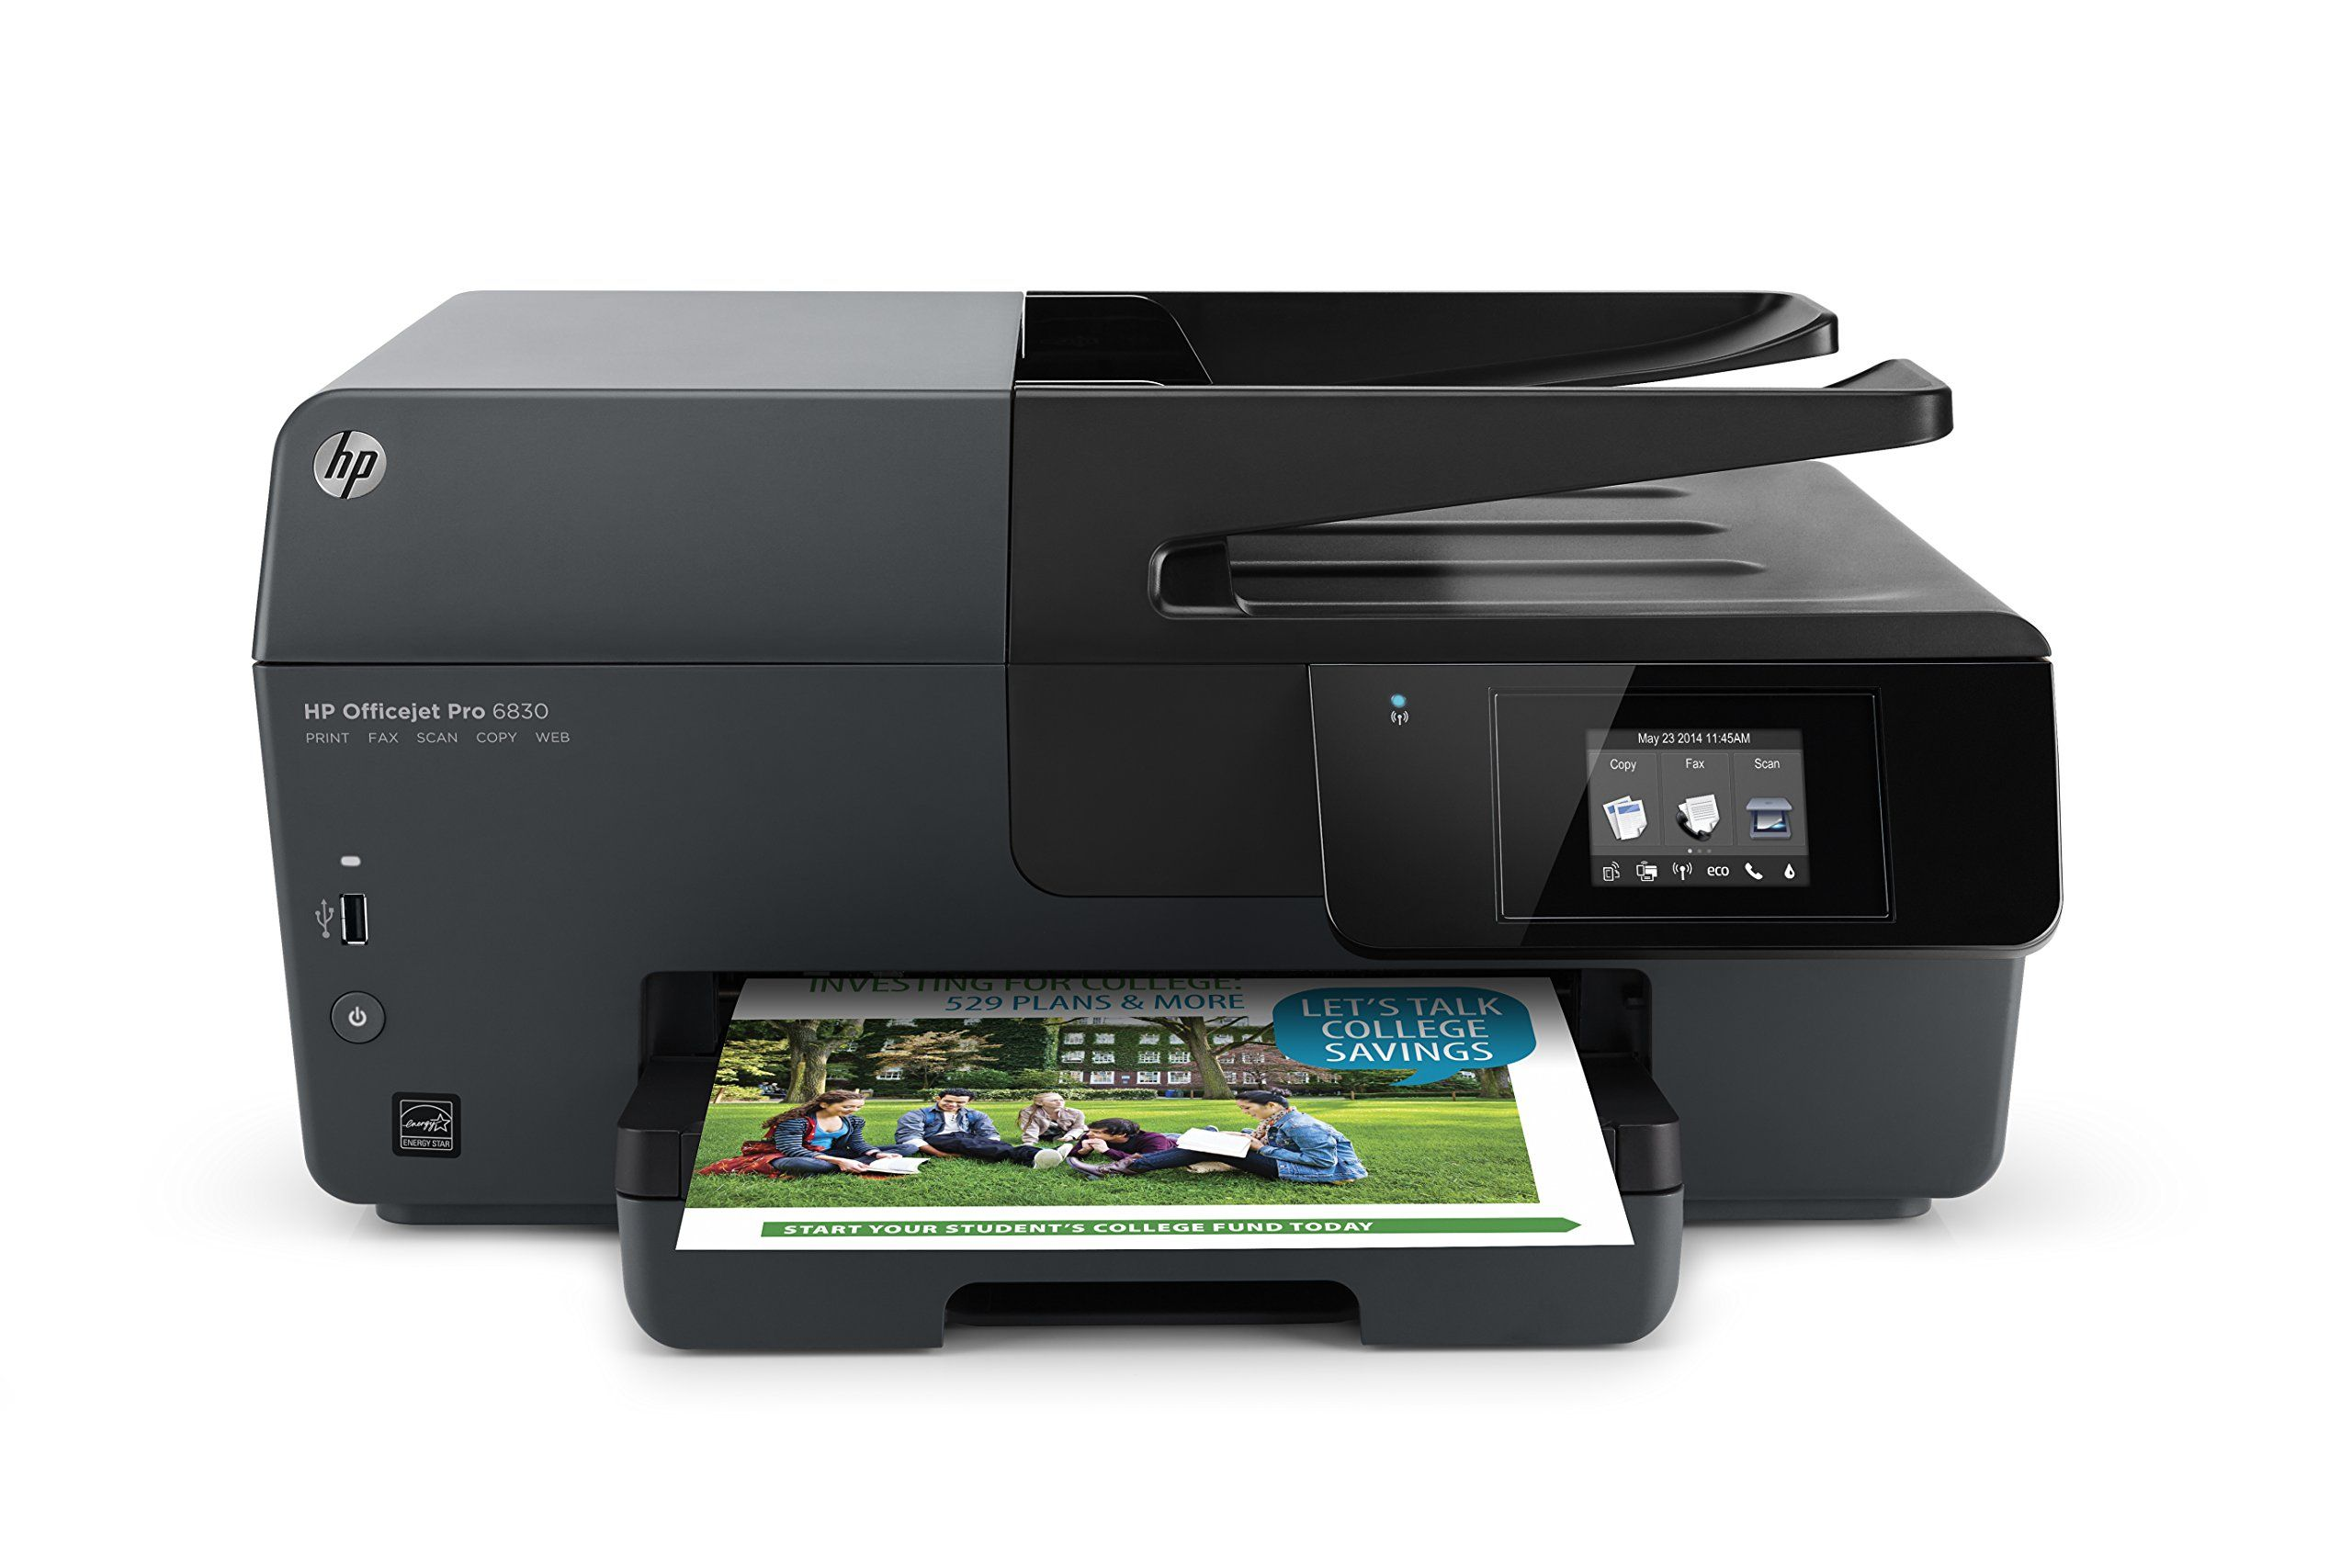 Amazon HP ficejet Pro 6830 Wireless All In e Inkjet Printer E3E02A B1H Electronics